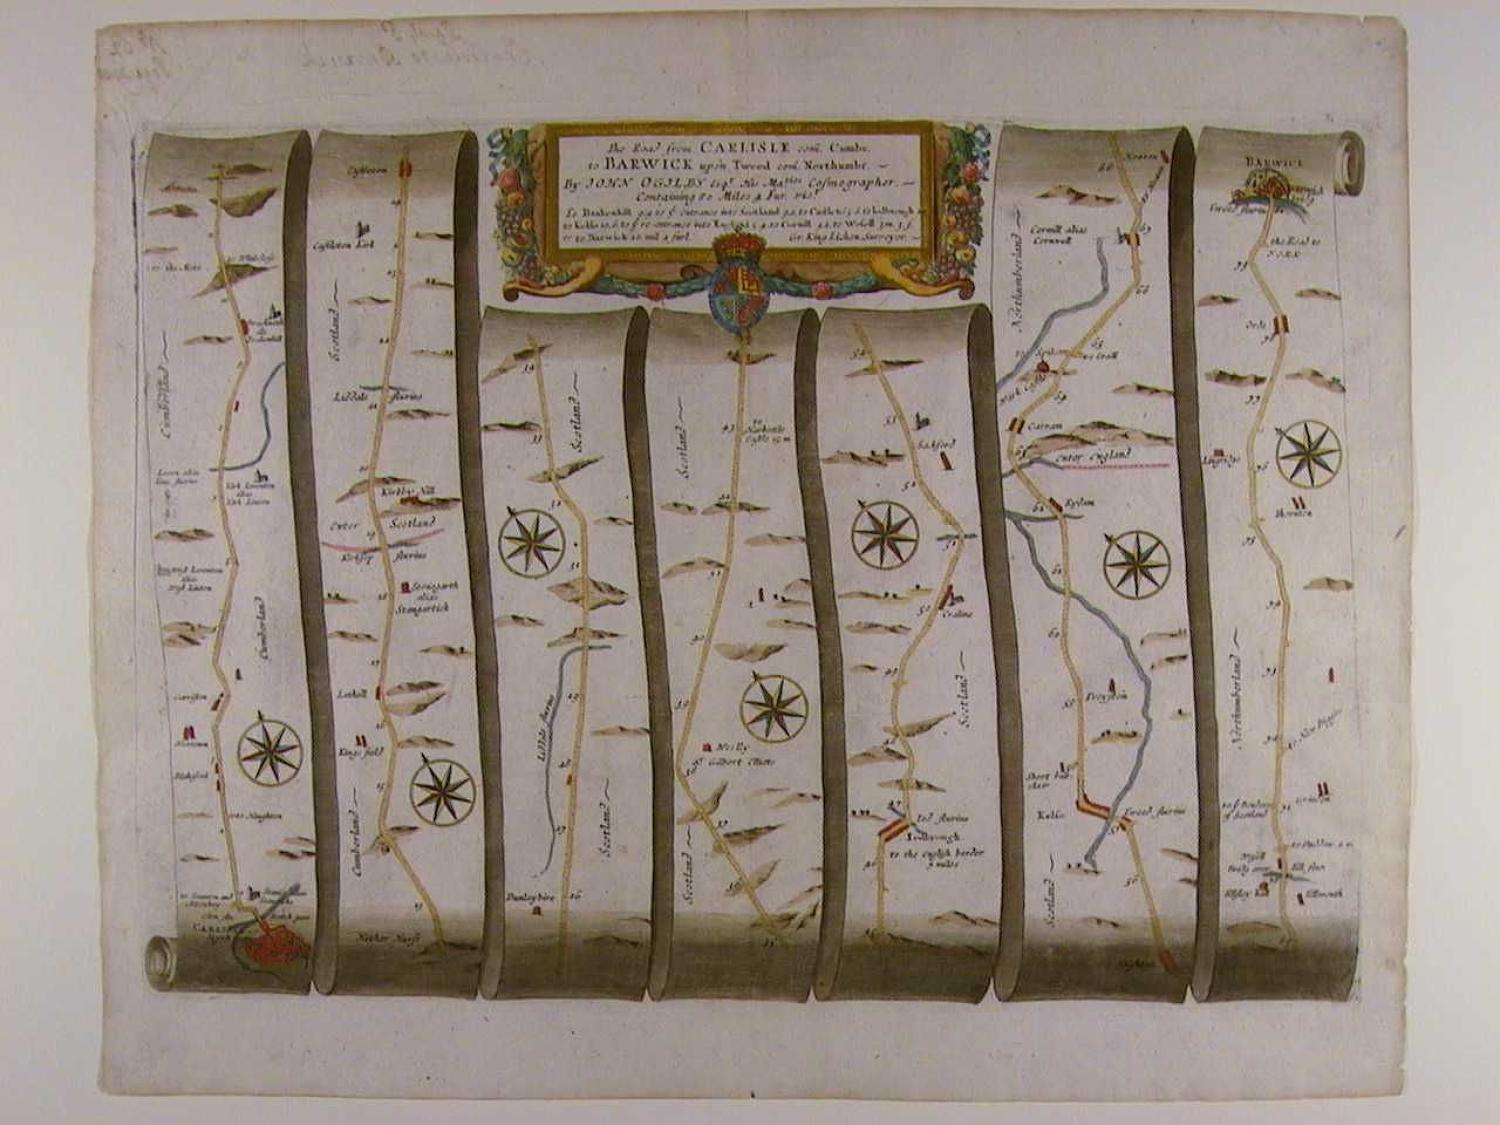 The Road from Carlisle, Cumbr. to Barwick upon Tweed, Northumbr by John Ogilby